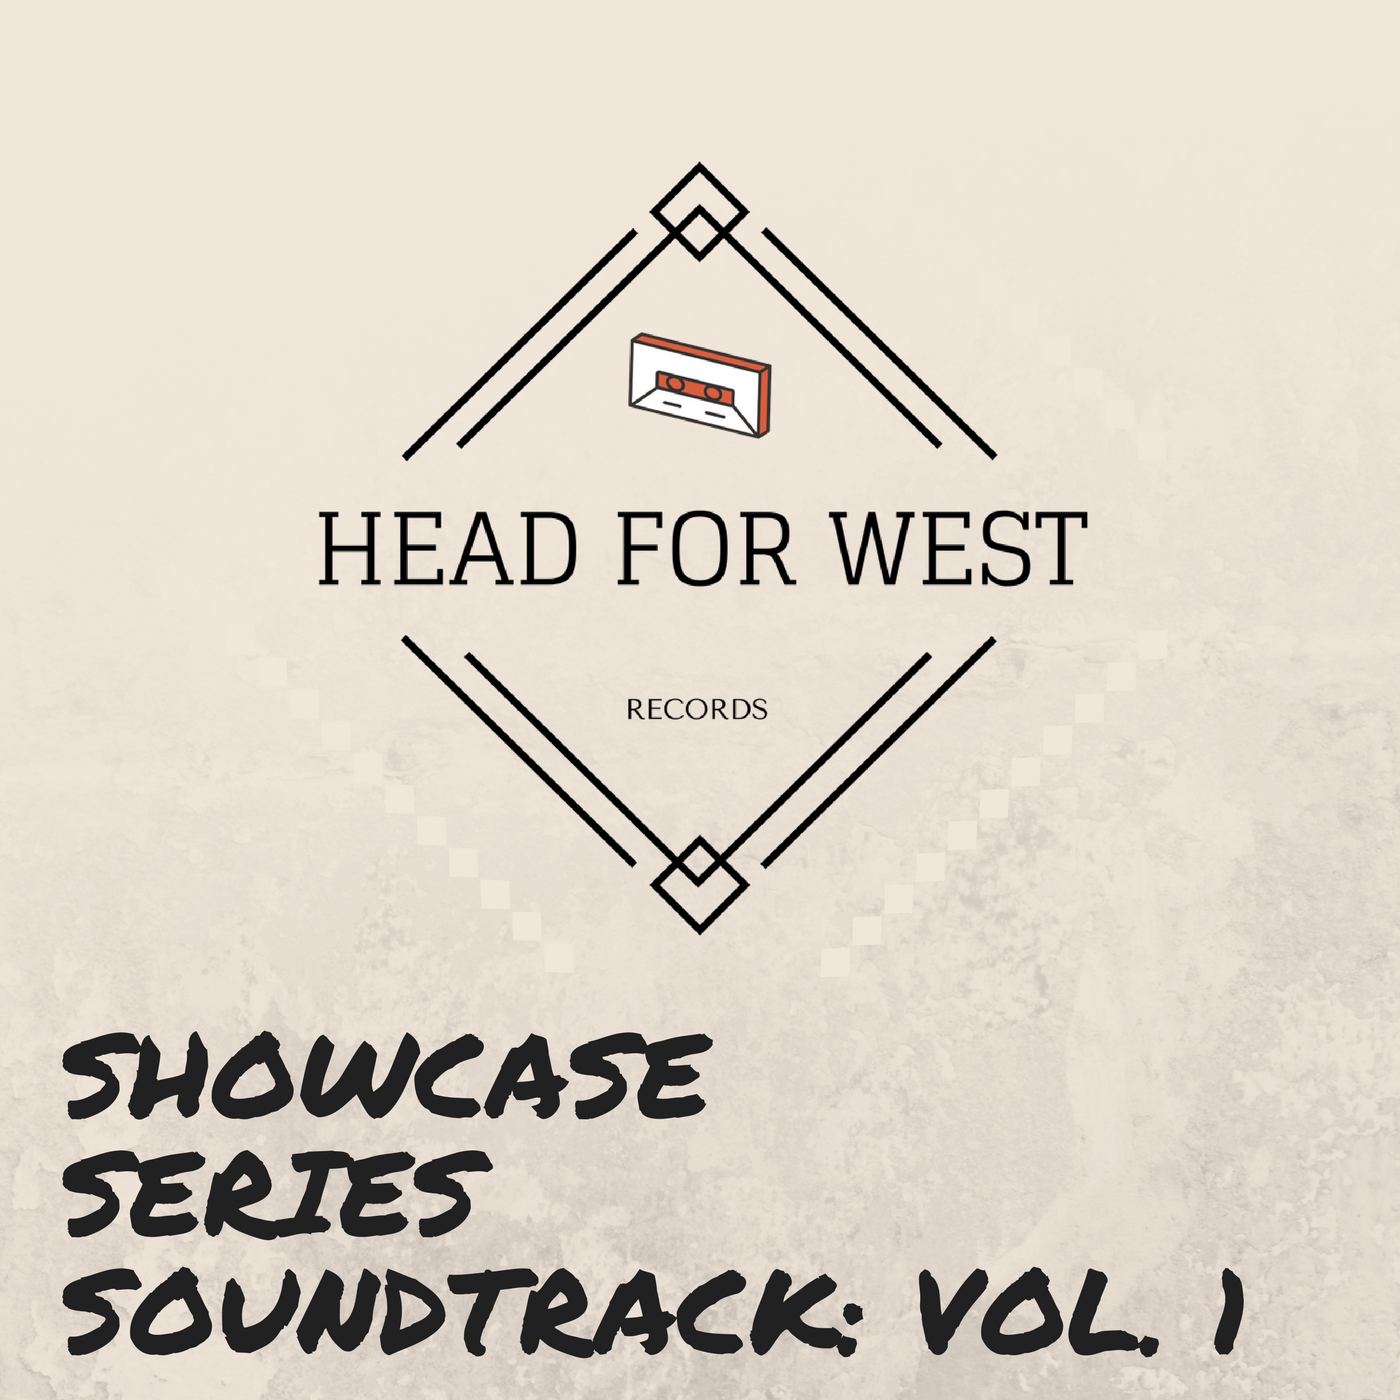 Showcase Series Soundtrack: Vol. 1 - Head For West Records